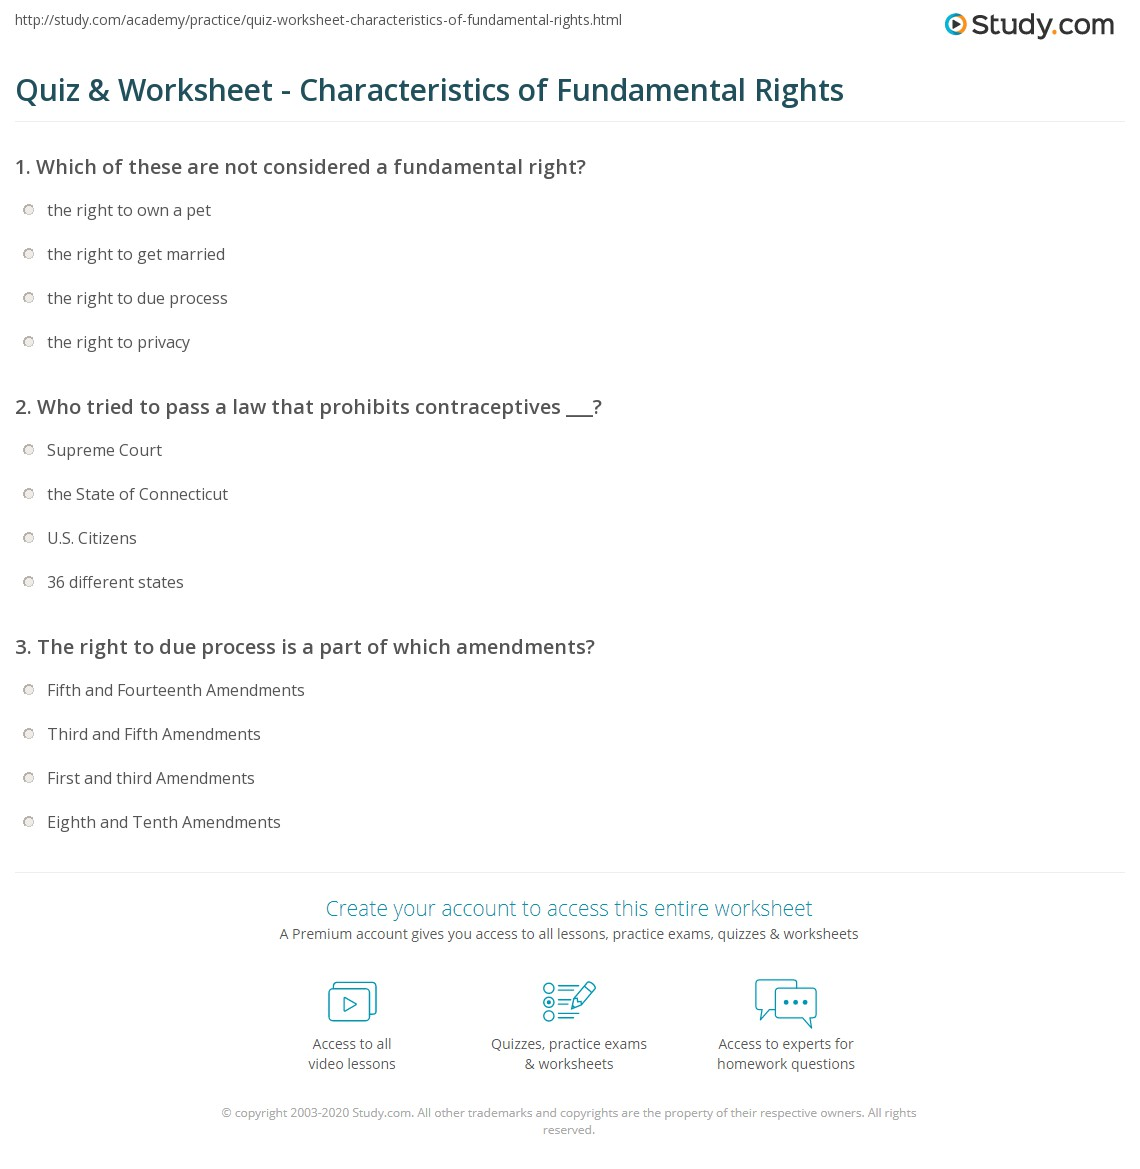 Aldiablosus  Winning Quiz Amp Worksheet  Characteristics Of Fundamental Rights  Studycom With Fascinating Print What Are Fundamental Rights  Definition Types Amp Features Worksheet With Enchanting Multiplication Worksheets X Also A An The Worksheets For Grade  In Addition Fractions Worksheets For Th Grade And Free Computer Worksheets As Well As French Body Parts Worksheets Additionally Subjects And Predicate Worksheets From Studycom With Aldiablosus  Fascinating Quiz Amp Worksheet  Characteristics Of Fundamental Rights  Studycom With Enchanting Print What Are Fundamental Rights  Definition Types Amp Features Worksheet And Winning Multiplication Worksheets X Also A An The Worksheets For Grade  In Addition Fractions Worksheets For Th Grade From Studycom